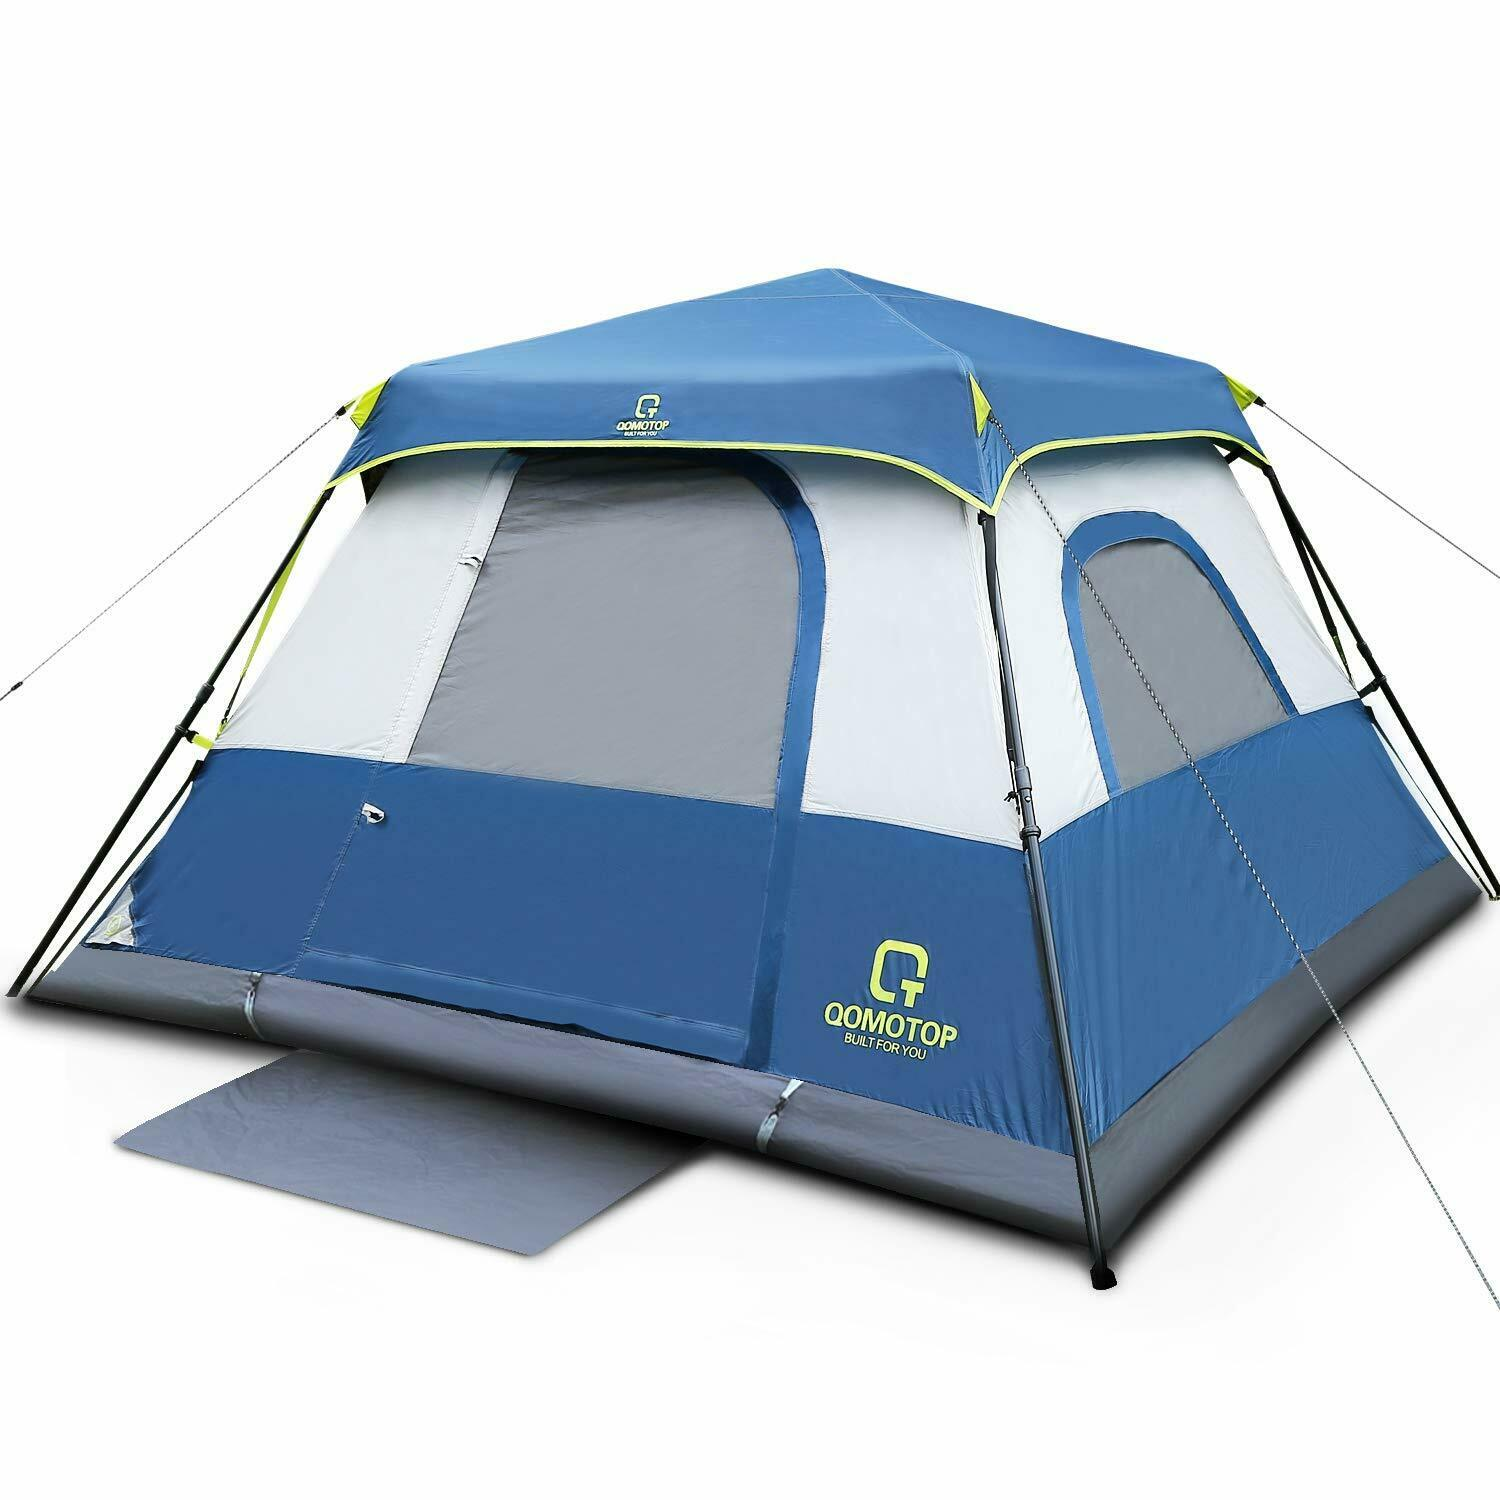 QOMOTOP 4 People Fast 60 Seconds Easy Set Up Instant Cabin Tent, Camping Tent, P